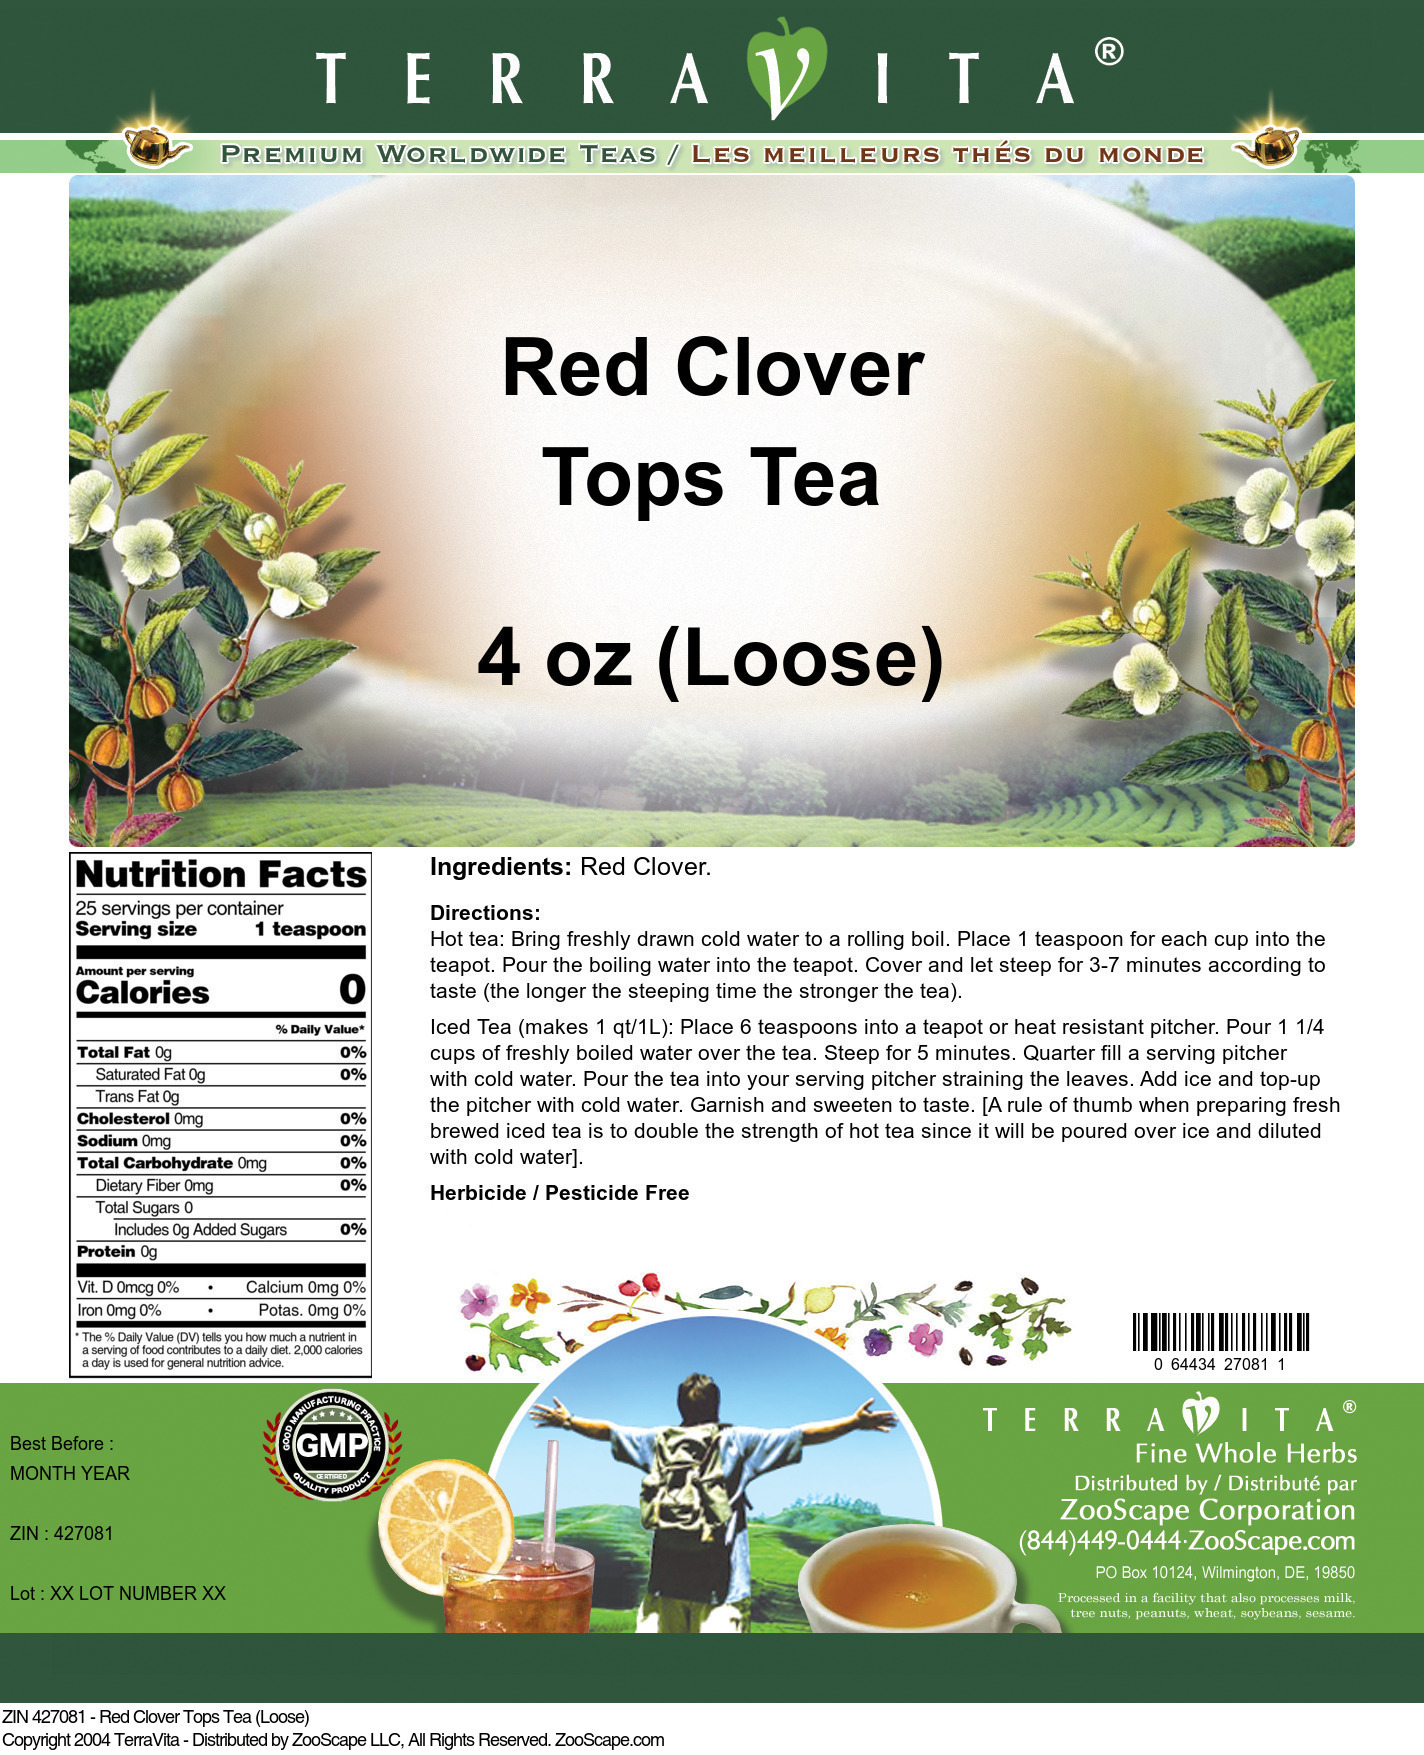 Red Clover Tops Tea (Loose) - Label